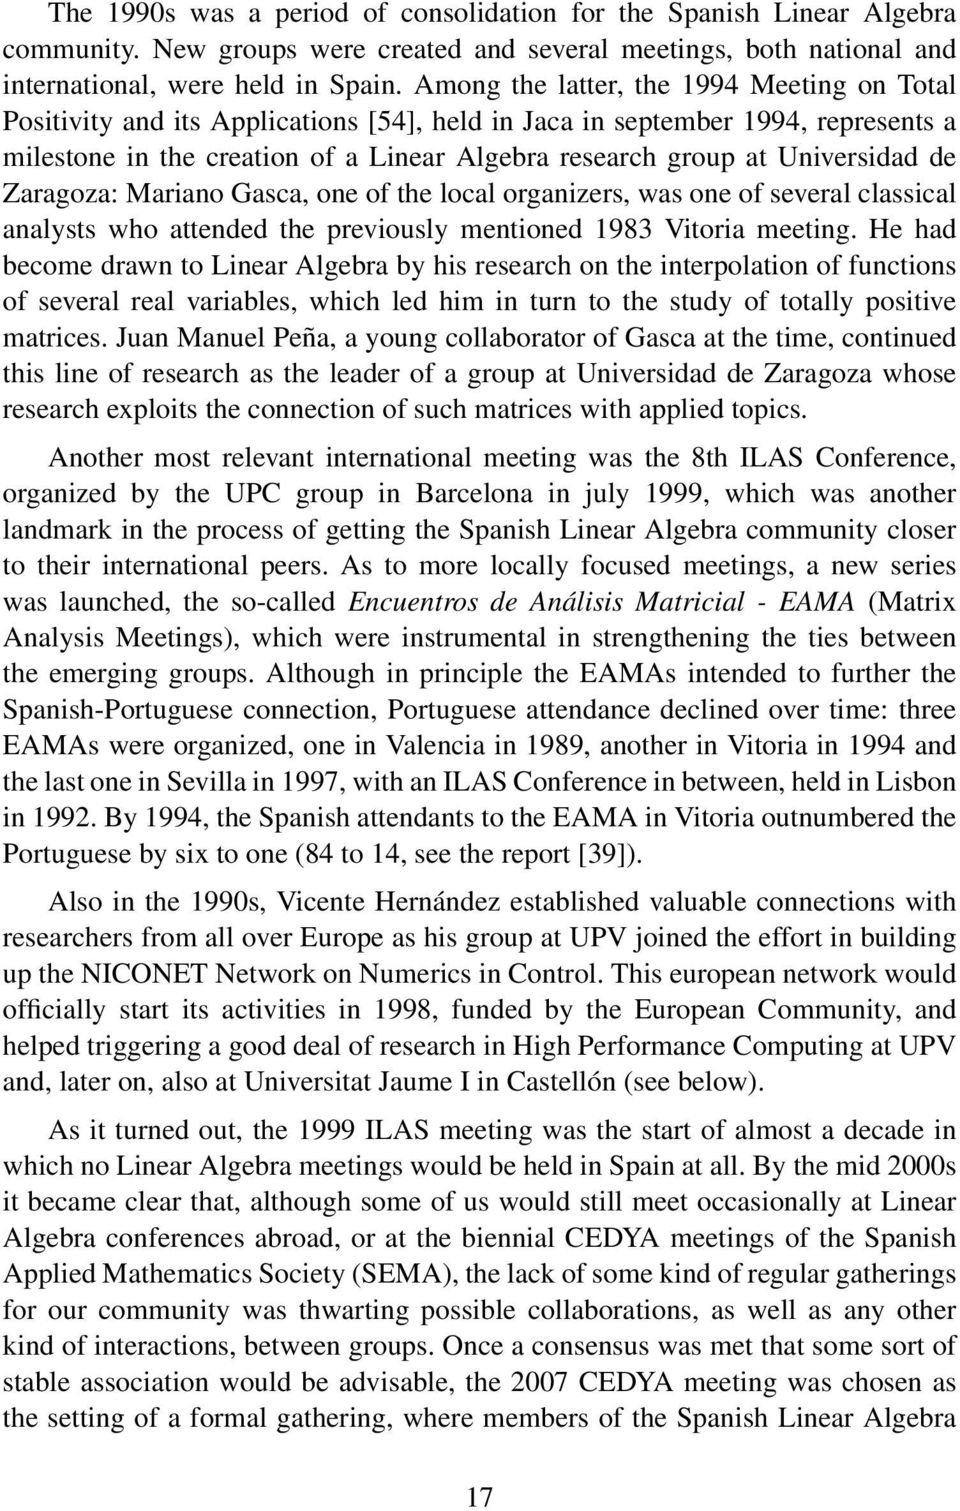 Universidad de Zaragoza: Mariano Gasca, one of the local organizers, was one of several classical analysts who attended the previously mentioned 1983 Vitoria meeting.